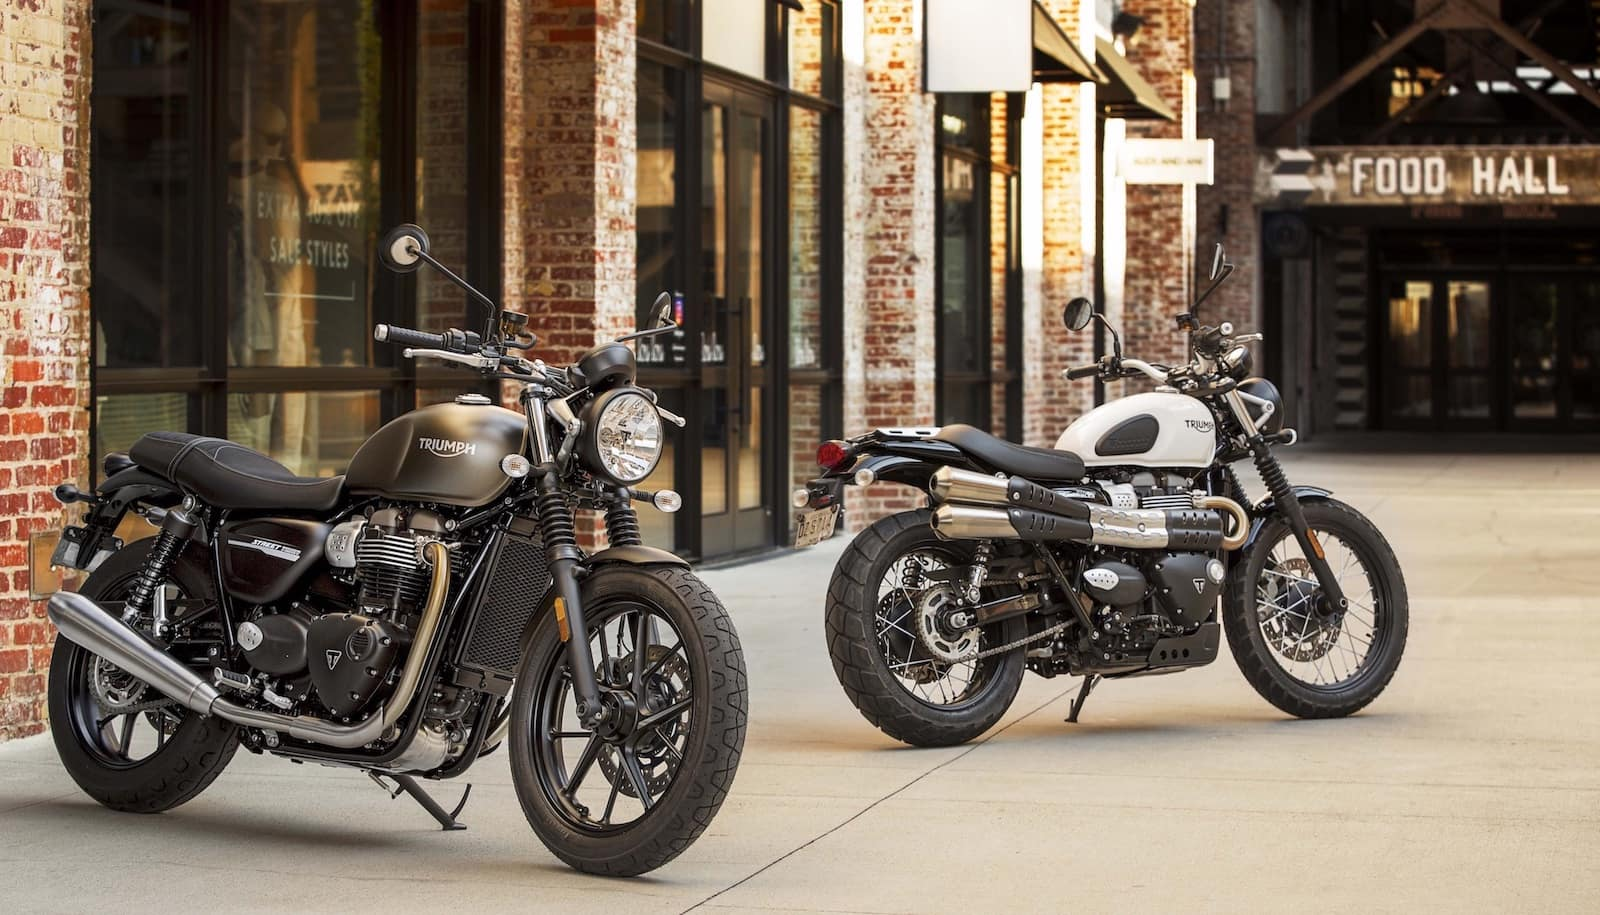 Triumph Street Win and Street Scrambler - extremely attractive motorcycles